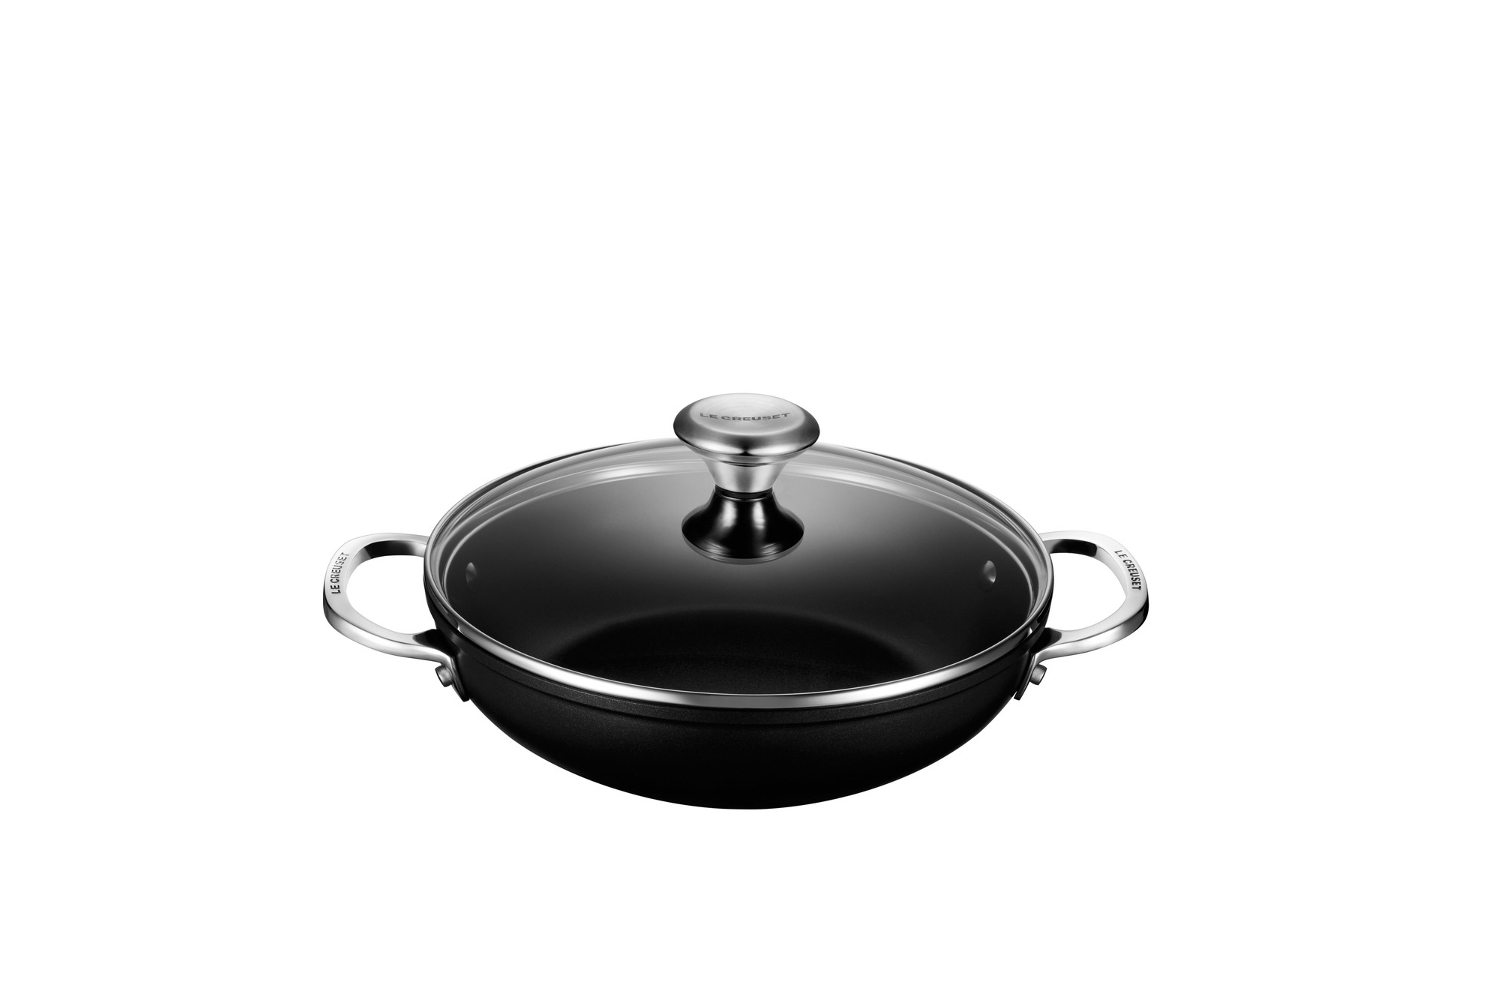 Le Creuset Toughened Nonstick 2 1/2 qt. Casserole w/Glass Lid